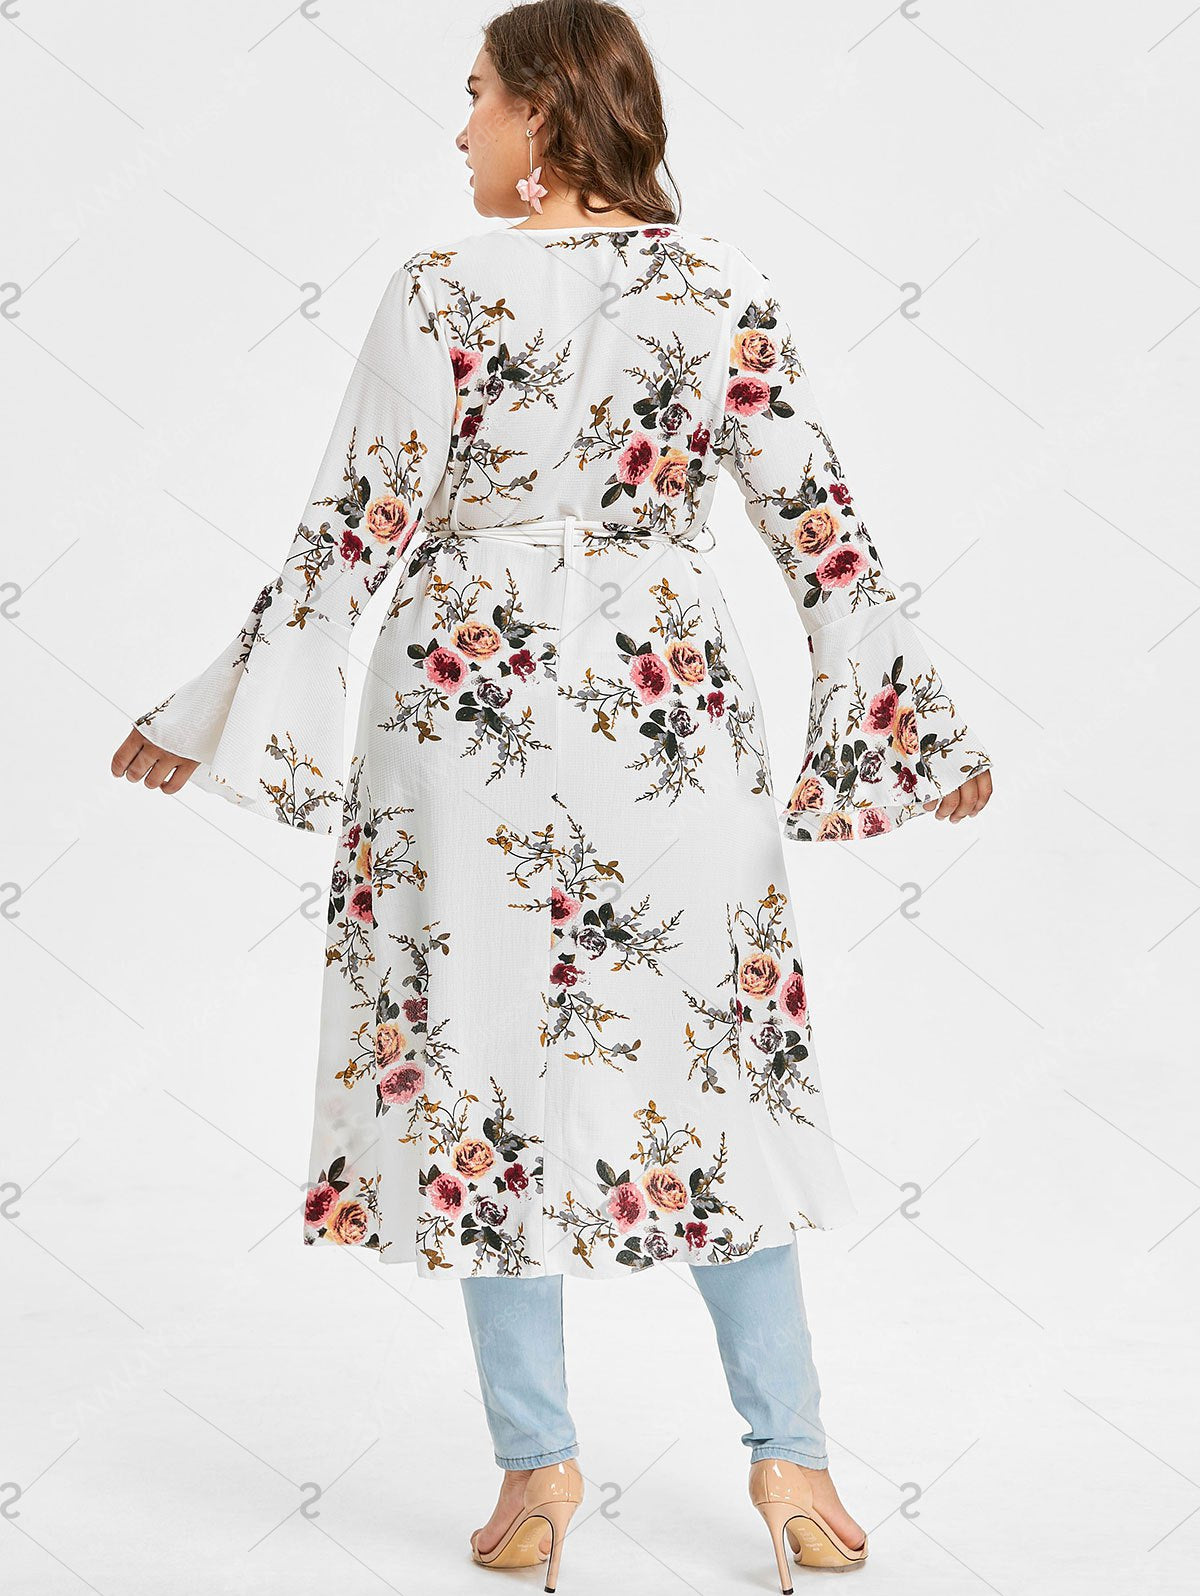 Plus Size Flower Bell Sleeve Blouse - White -L- 4X – Zana Supper Mall 24e694da7af9